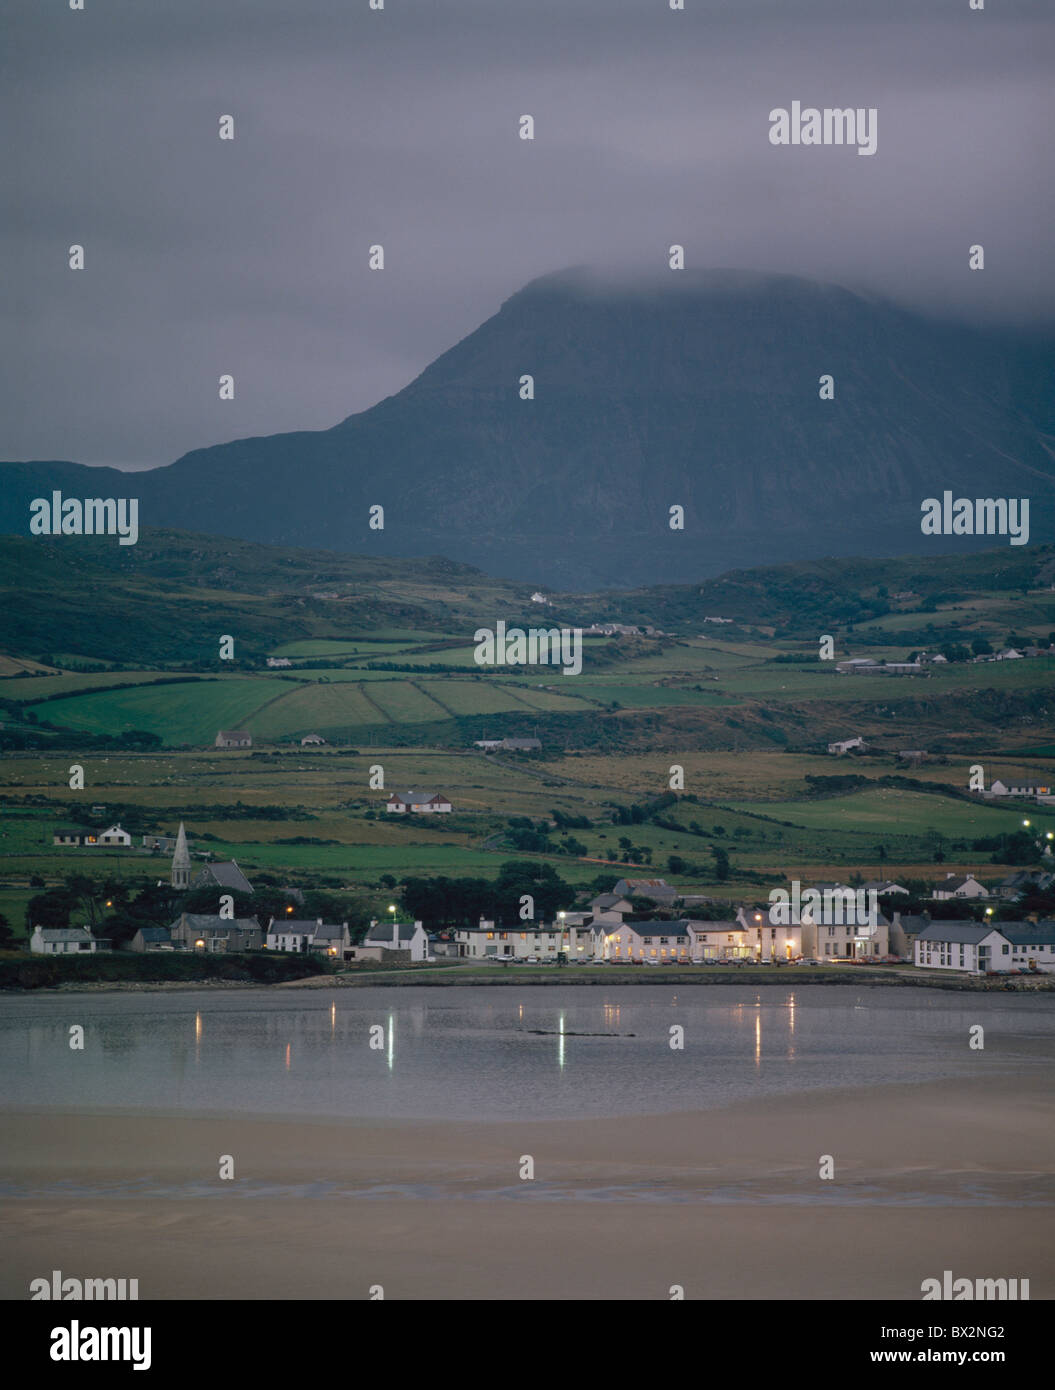 Co Donegal, Dunfanaghy, Ireland; Small Fishing Village On The Water - Stock Image